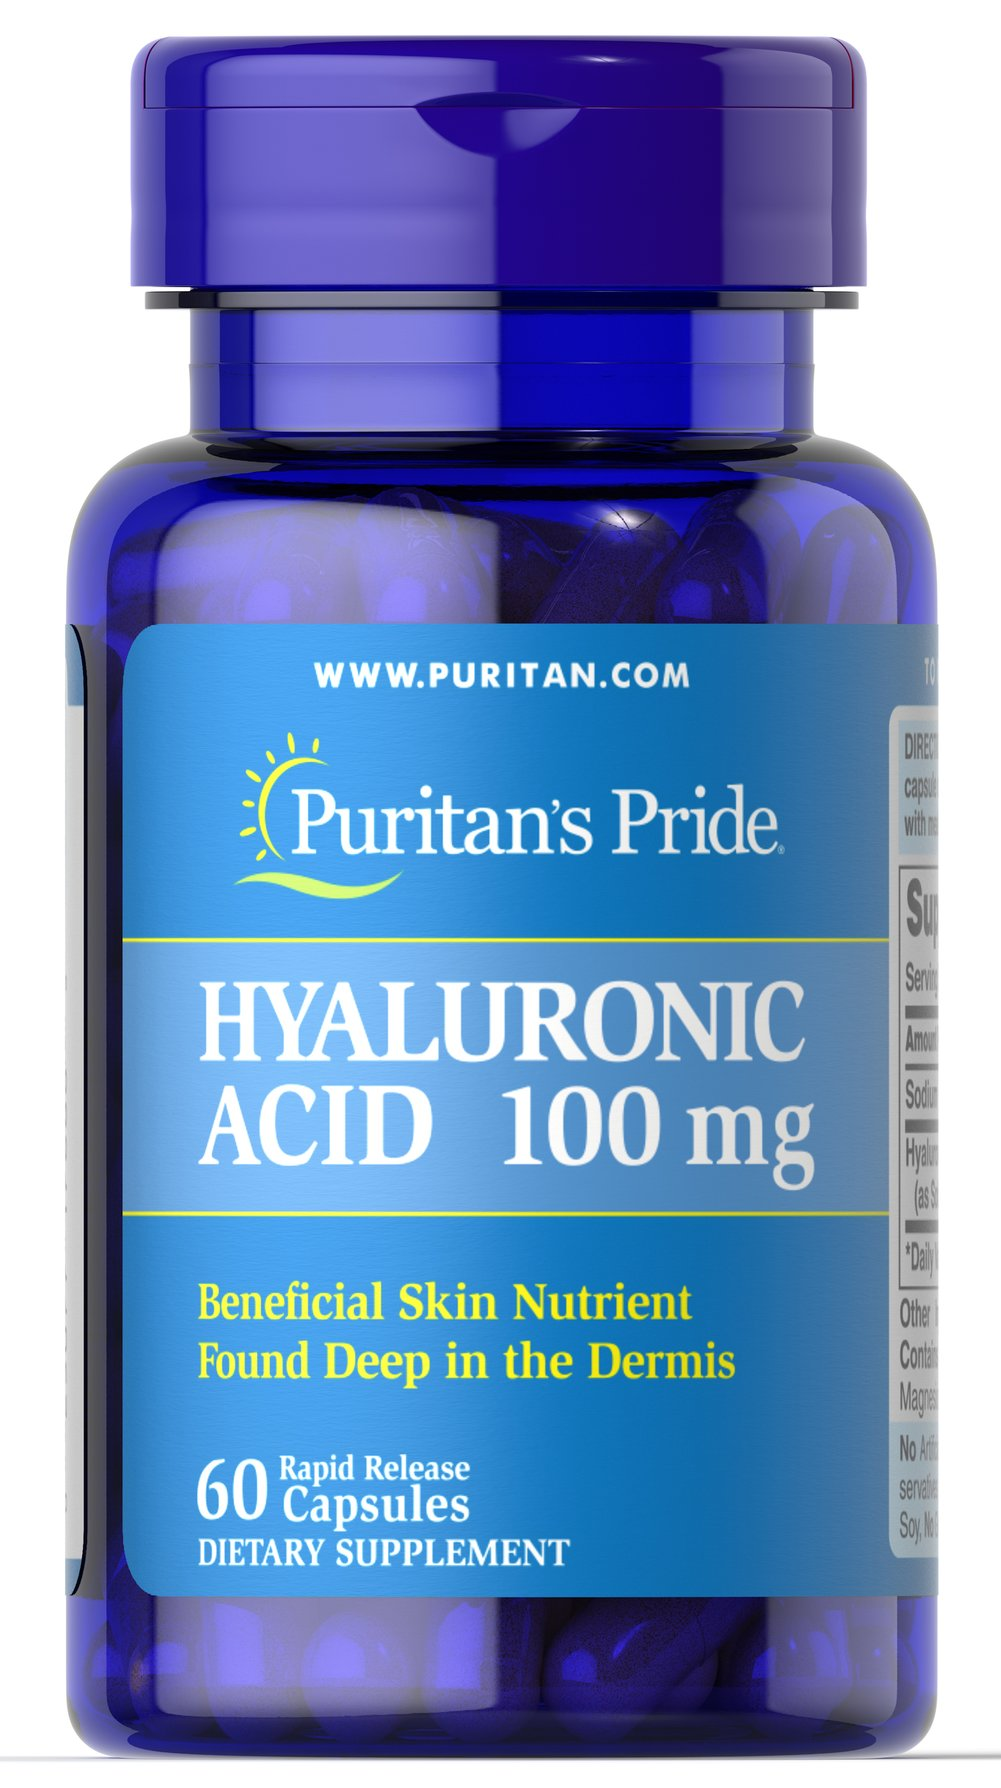 Hyaluronic Acid 100 mg <p>Helps lubricate joints**</p><p>Hyaluronic Acid is a polysaccharide found in almost all adult connective tissue, including joints, ligaments, tendons and skin.** Just one Hyaluronic Acid capsule a day can help maintain the fluid between your joints, providing the cushioning and lubrication necessary for easy movement.**</p> 60 Capsules 100 mg $32.24